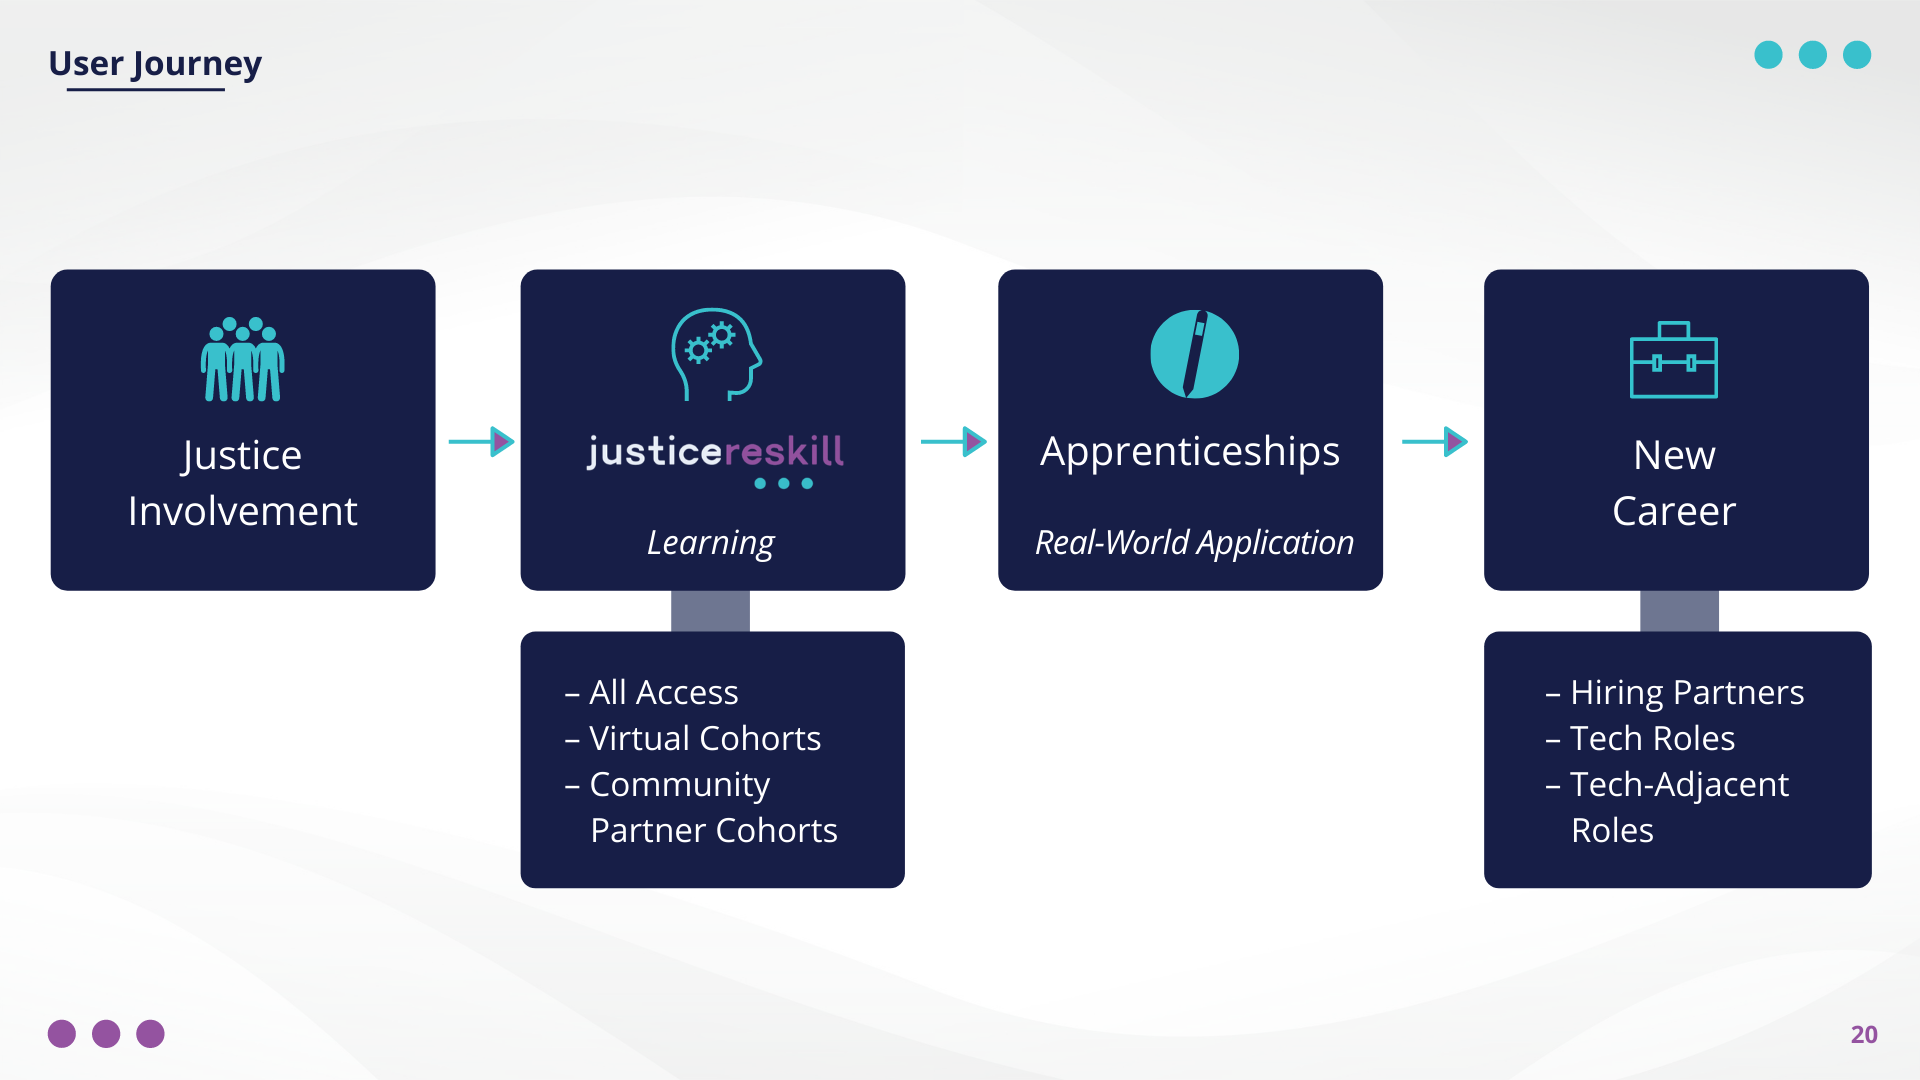 The Justice Reskill Path: 1. Justice Involvement  2. Justice Reskill (Access to cohorts) 3. Apprenticeships 4. New Career